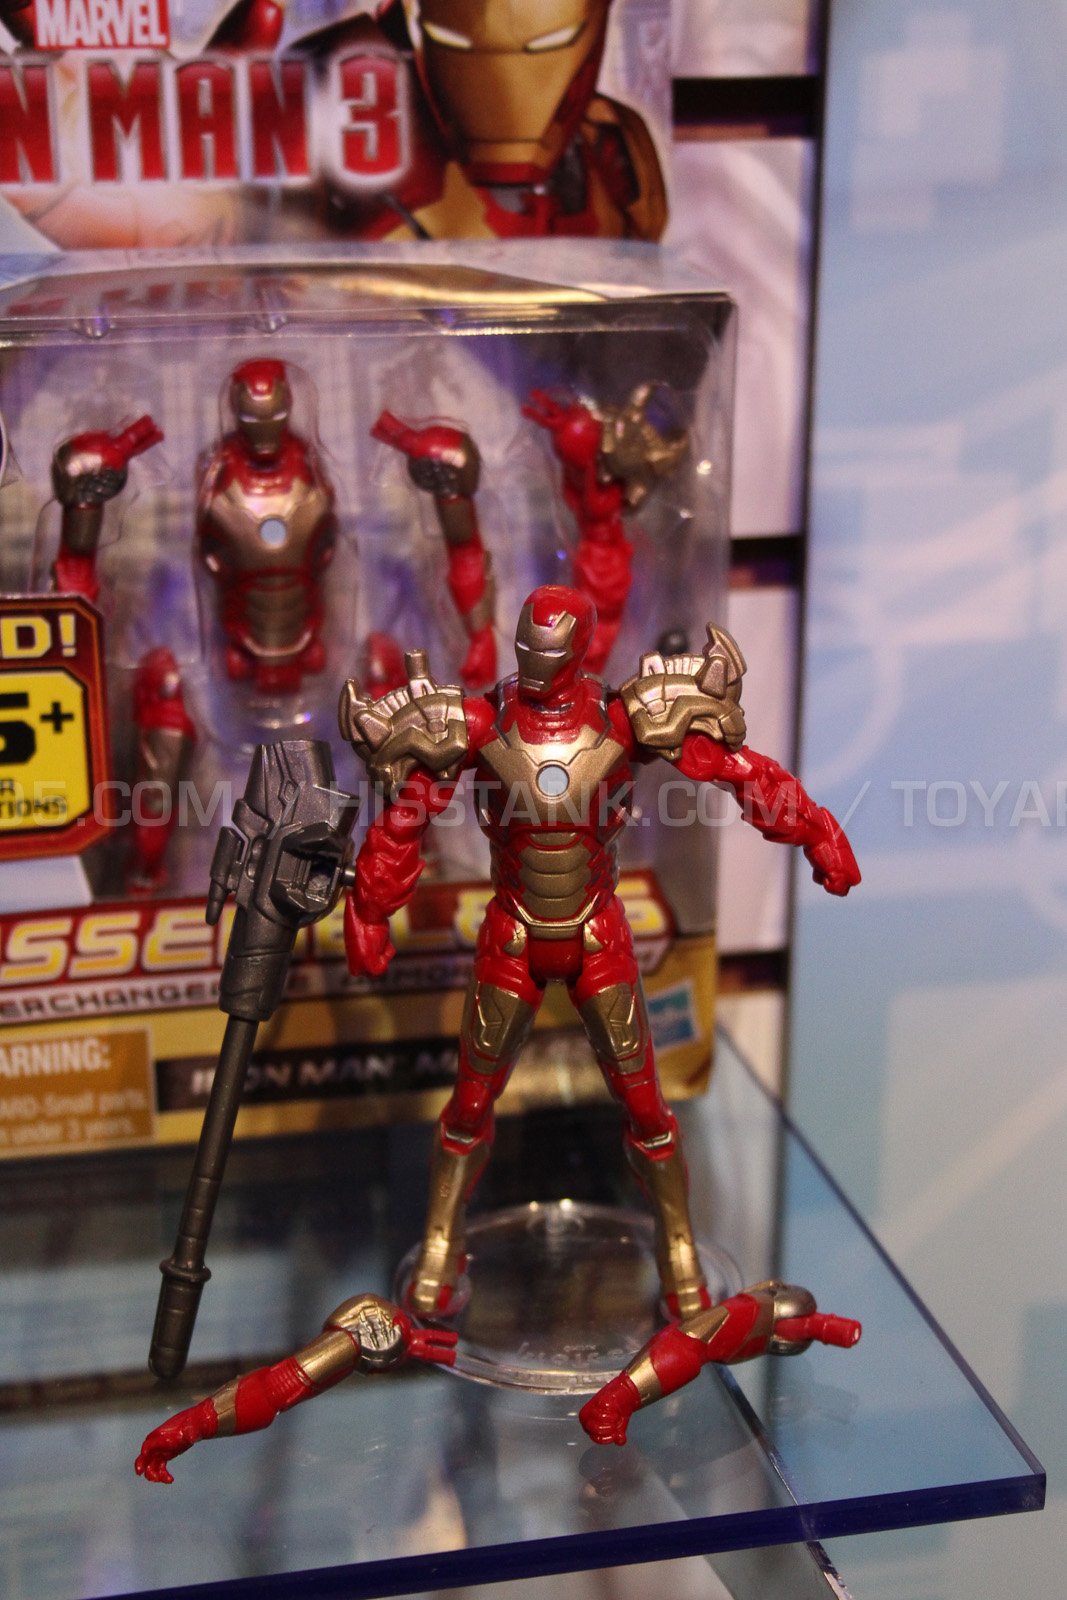 Iron Man 3 Toys ~ Iron man toys from toy fair the toyark news